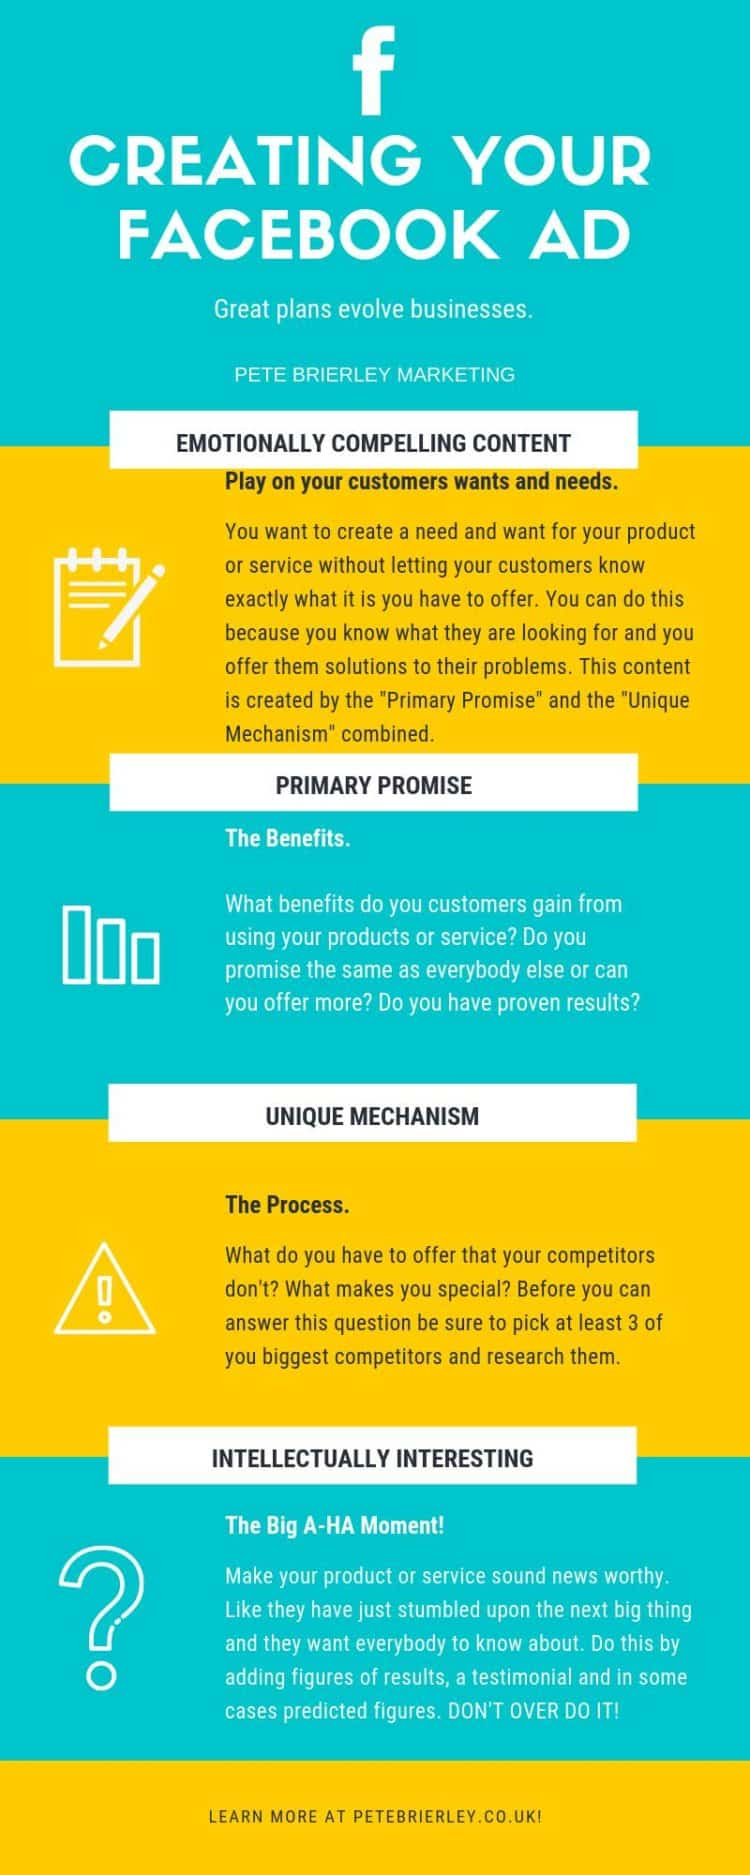 Here's a free infographic I created explaining the 5 step process to creating the perfect ad,